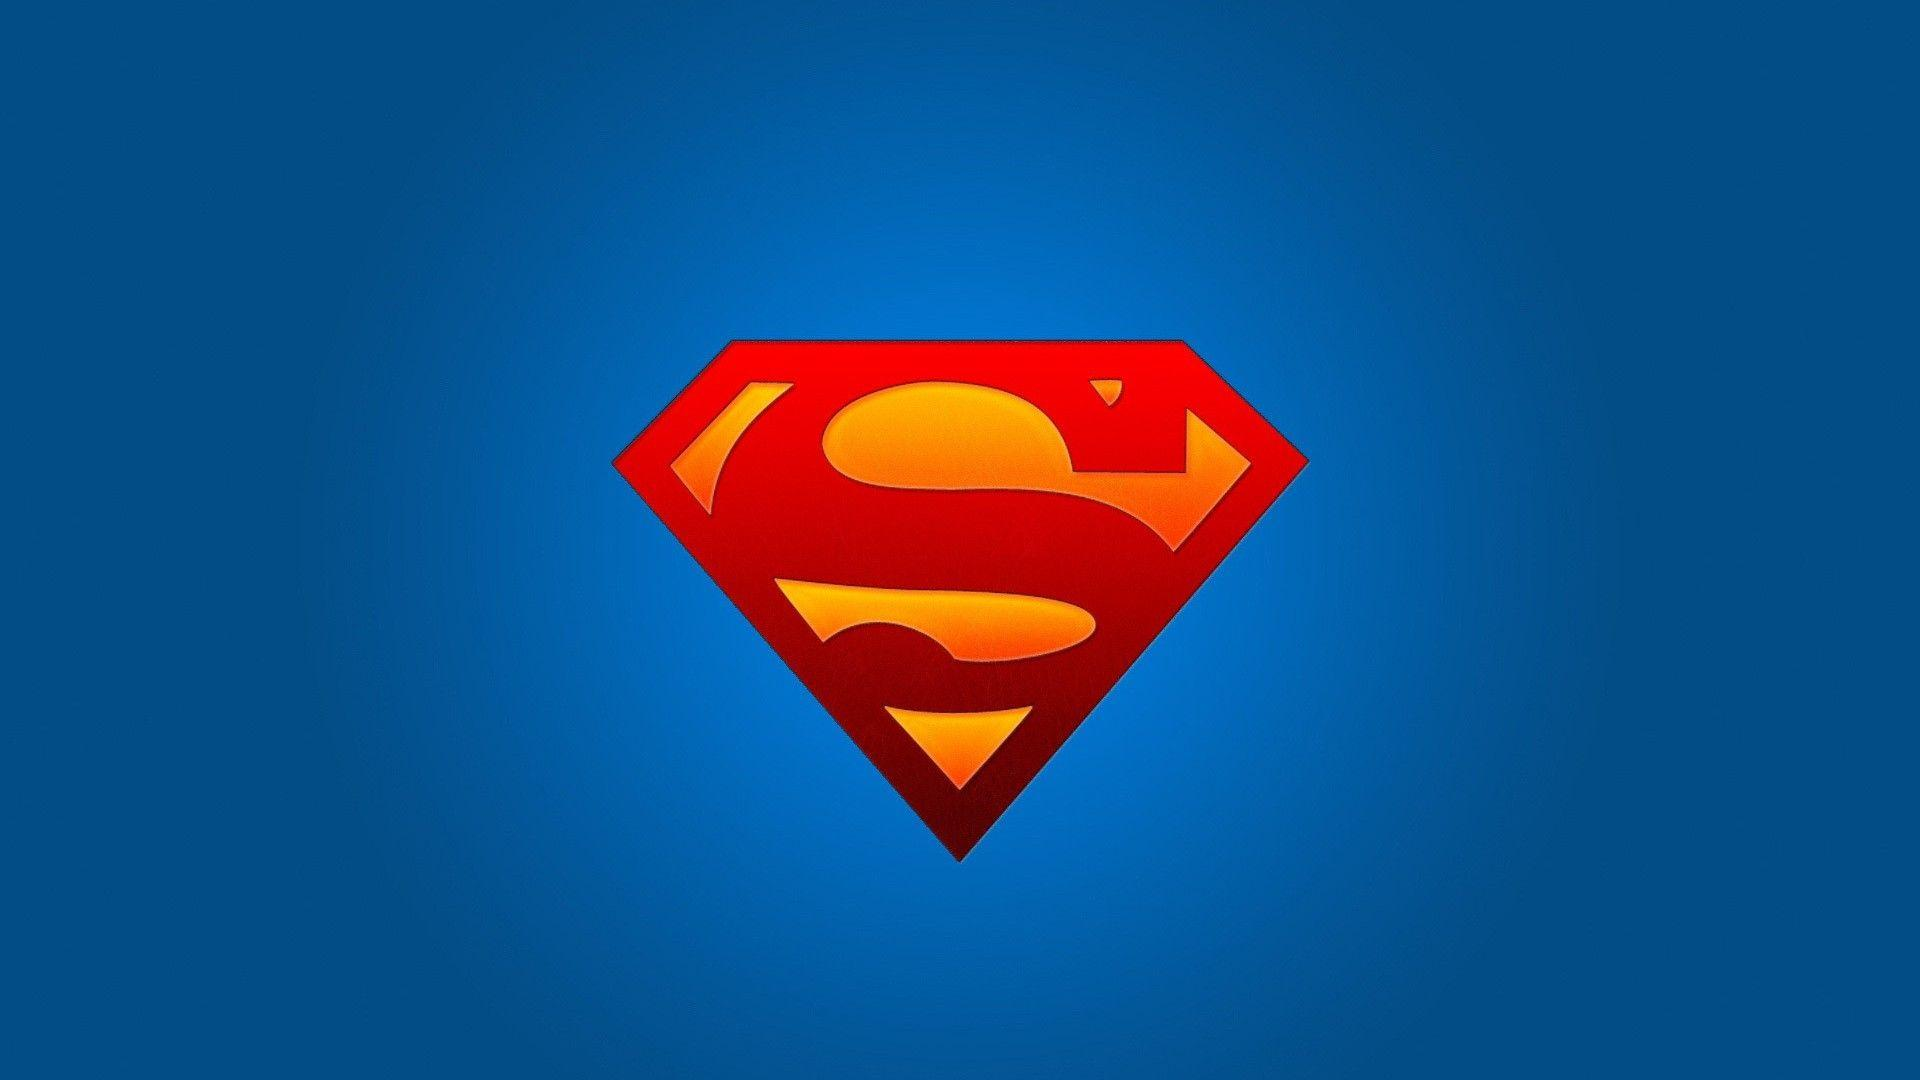 Superheroes Logos Wallpapers 1920x1080